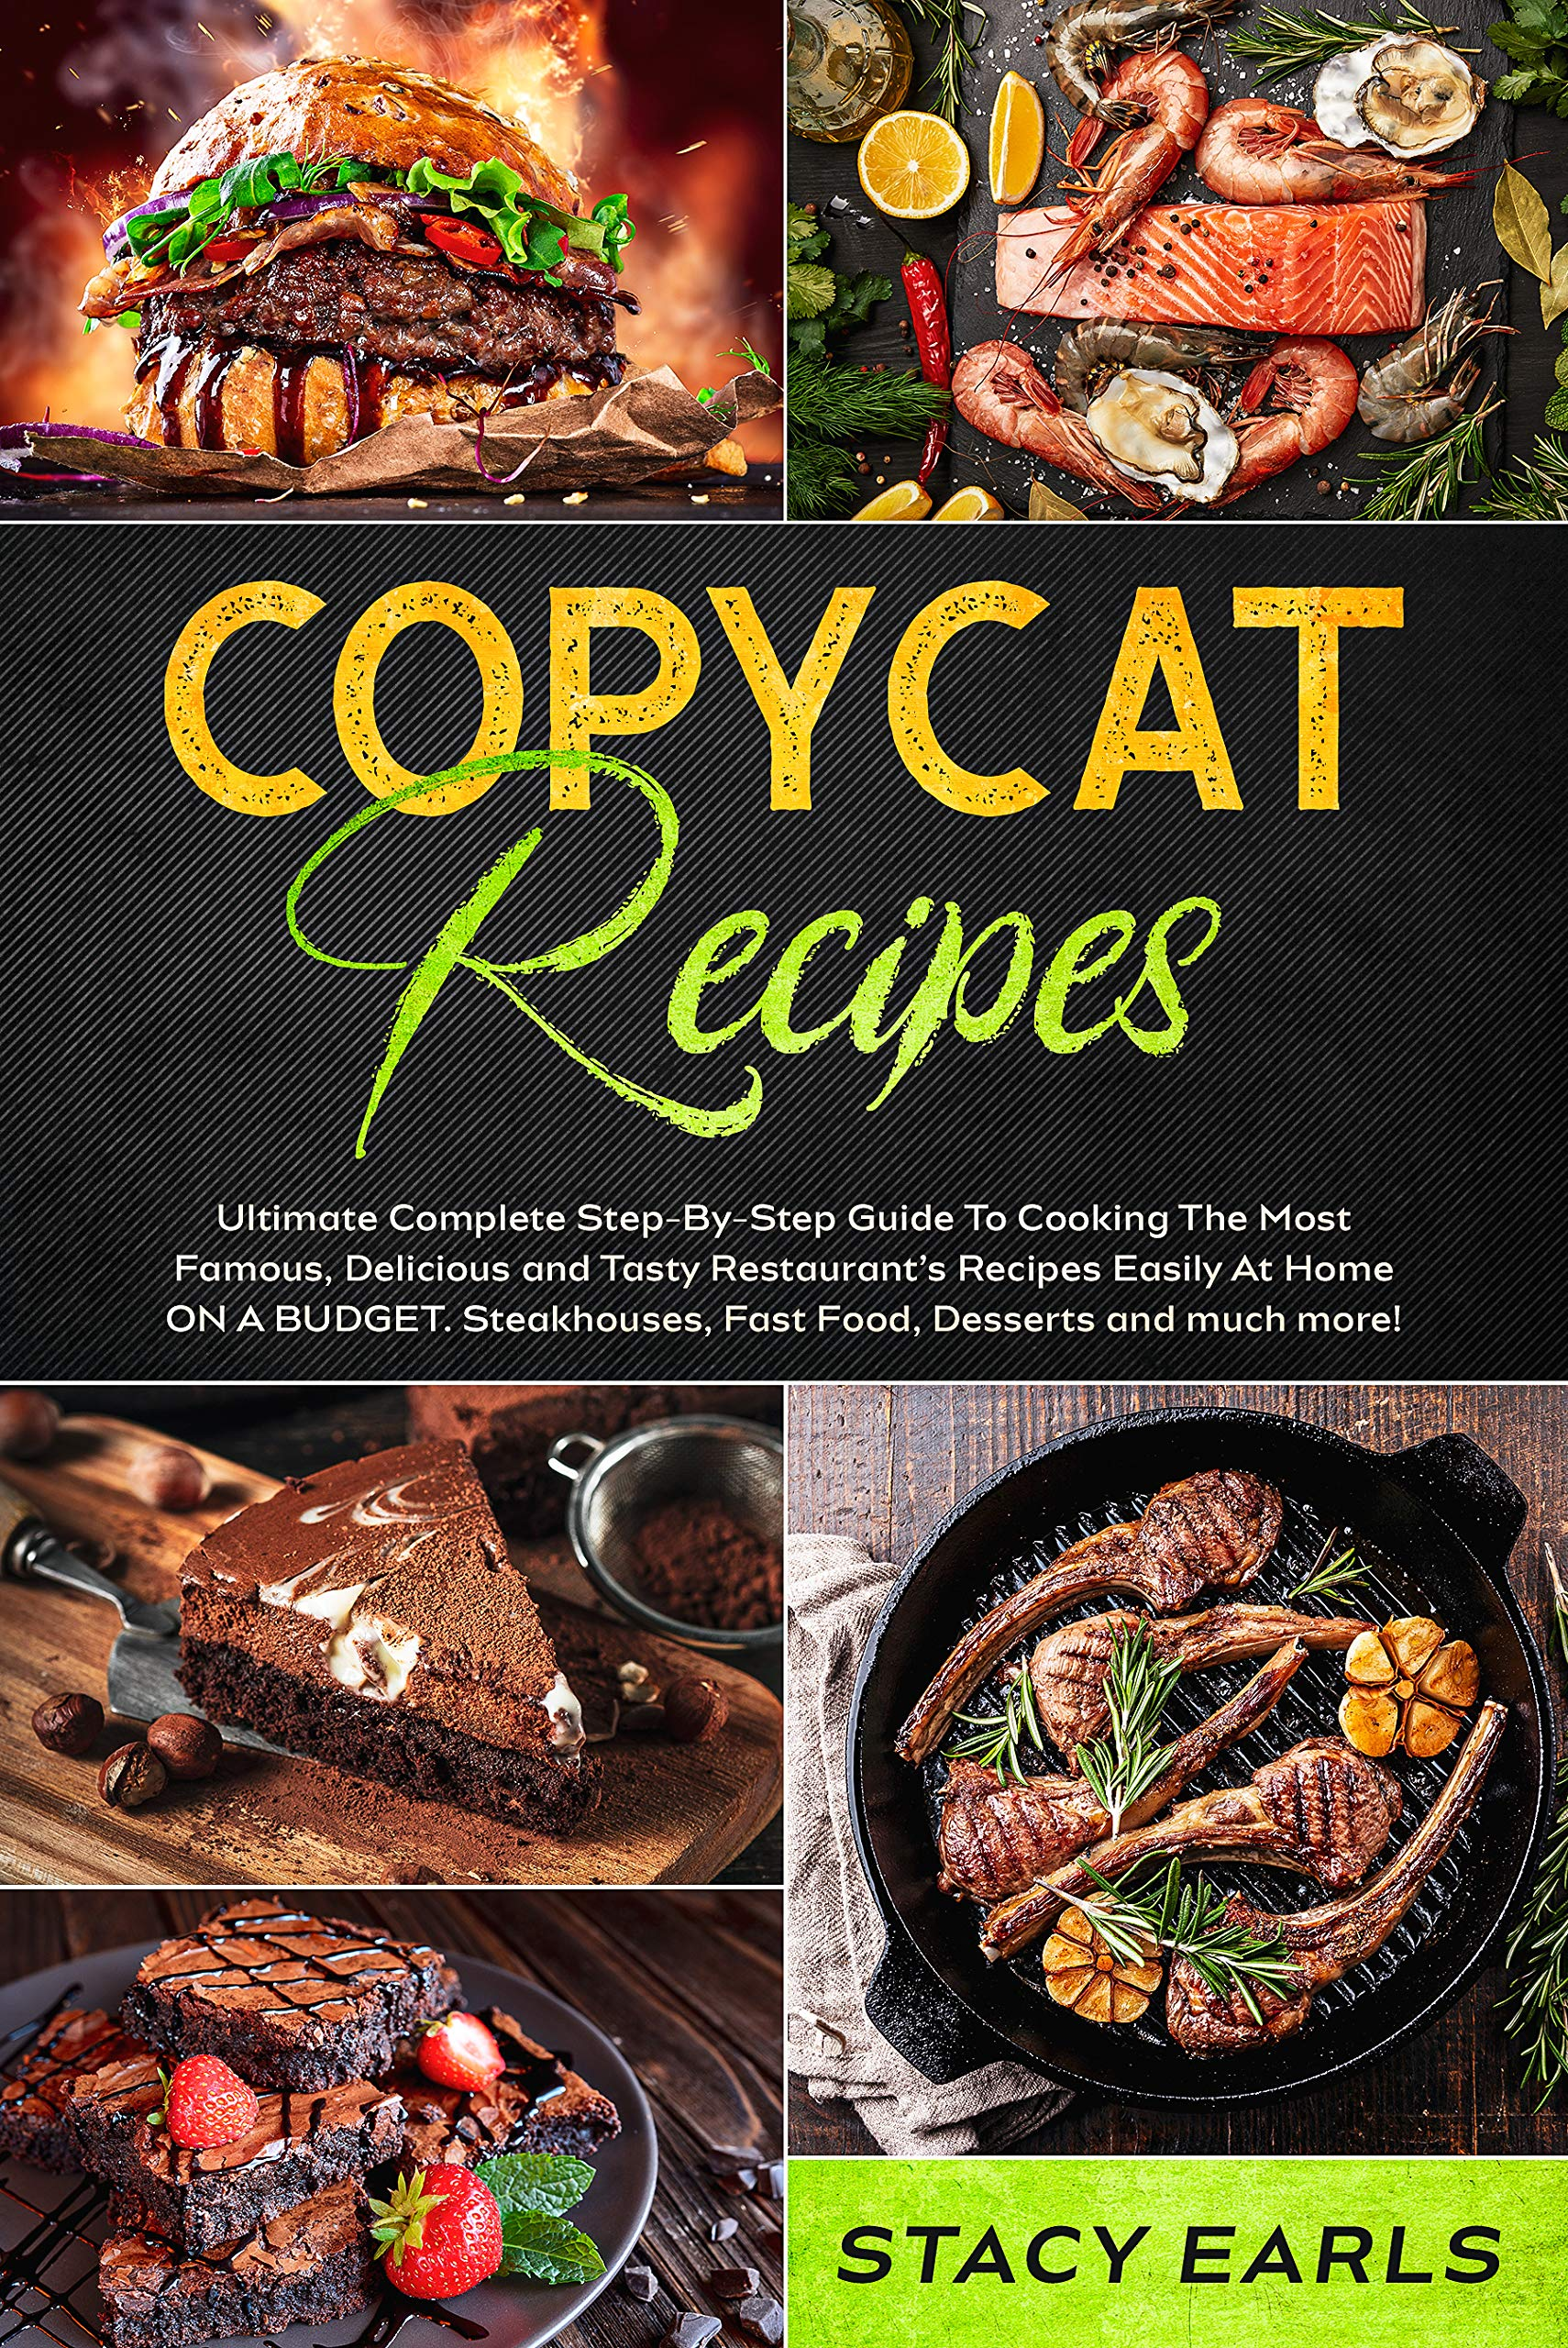 Copycat Recipes: Ultimate Complete Step-By-Step Guide To Cooking The Most Famous, Delicious and Tasty Restaurant's Recipes Easily At Home ON A BUDGET. Steakhouses, Fast Food, Desserts and much more!